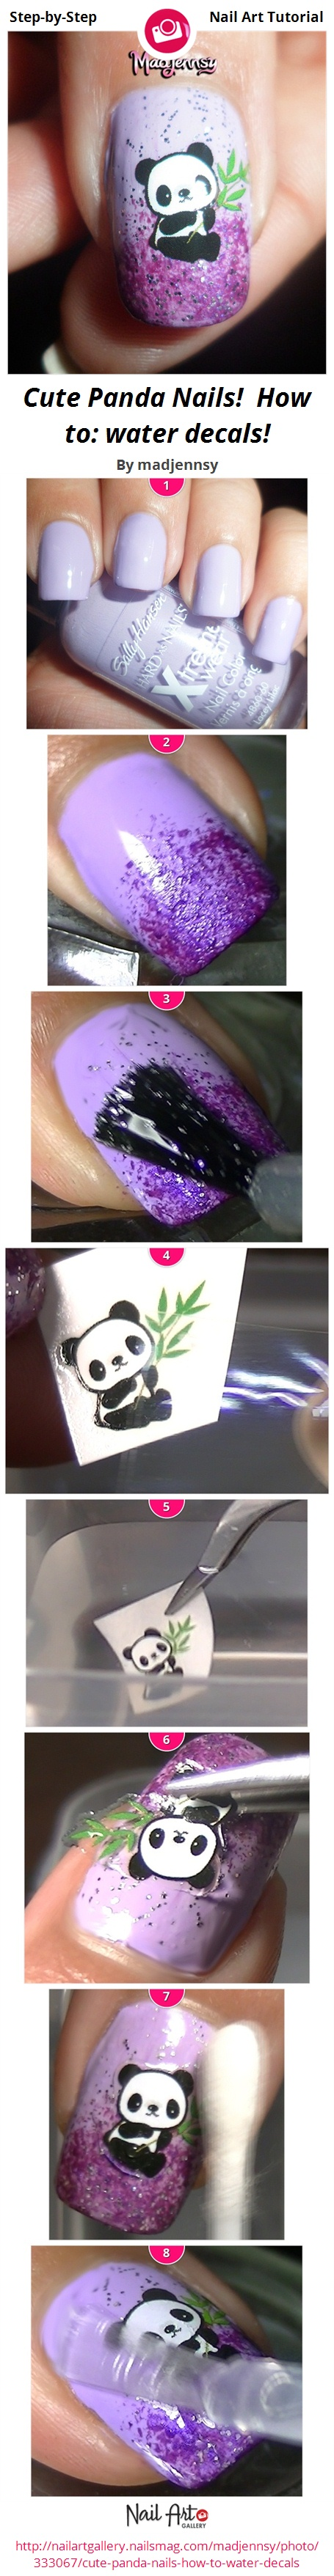 Cute Panda Nails How To Water Decals By Madjennsy Nail Art